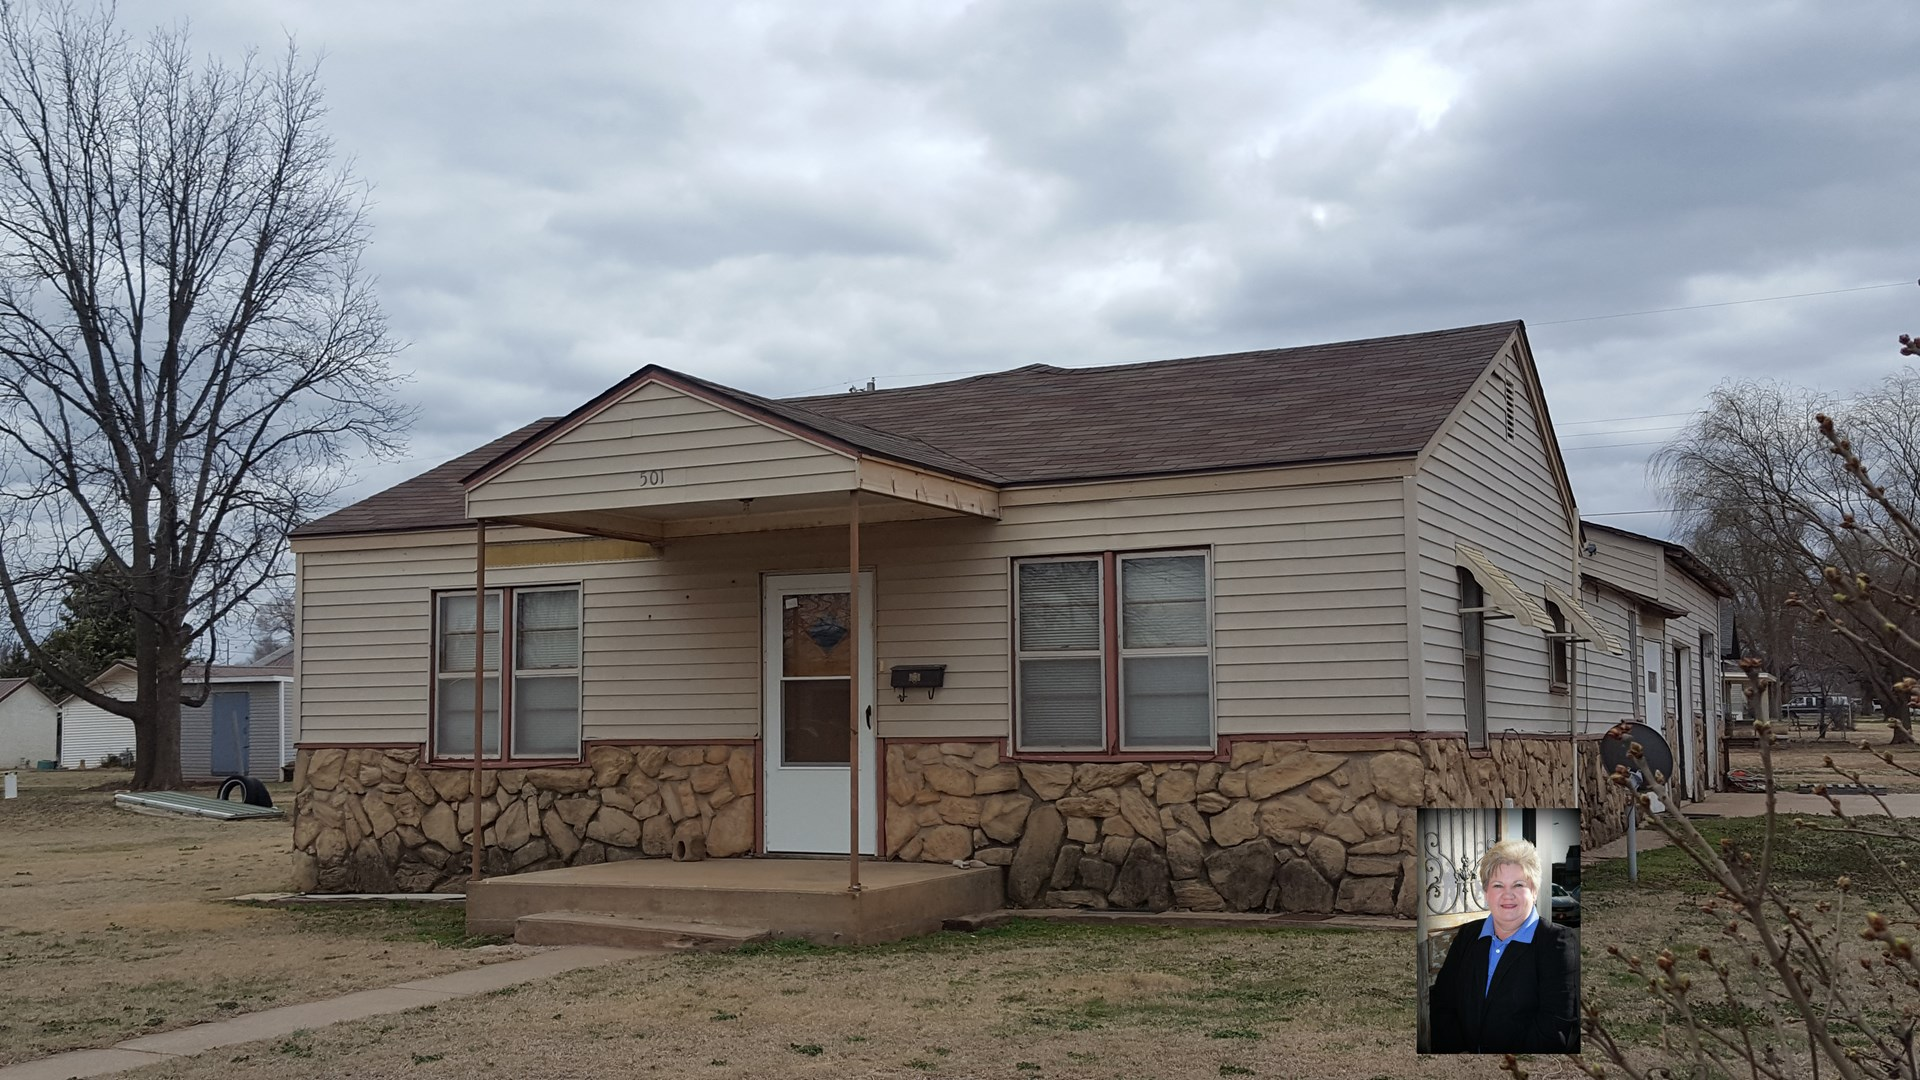 3 Bedroom home with oversized garage in Alva, OK